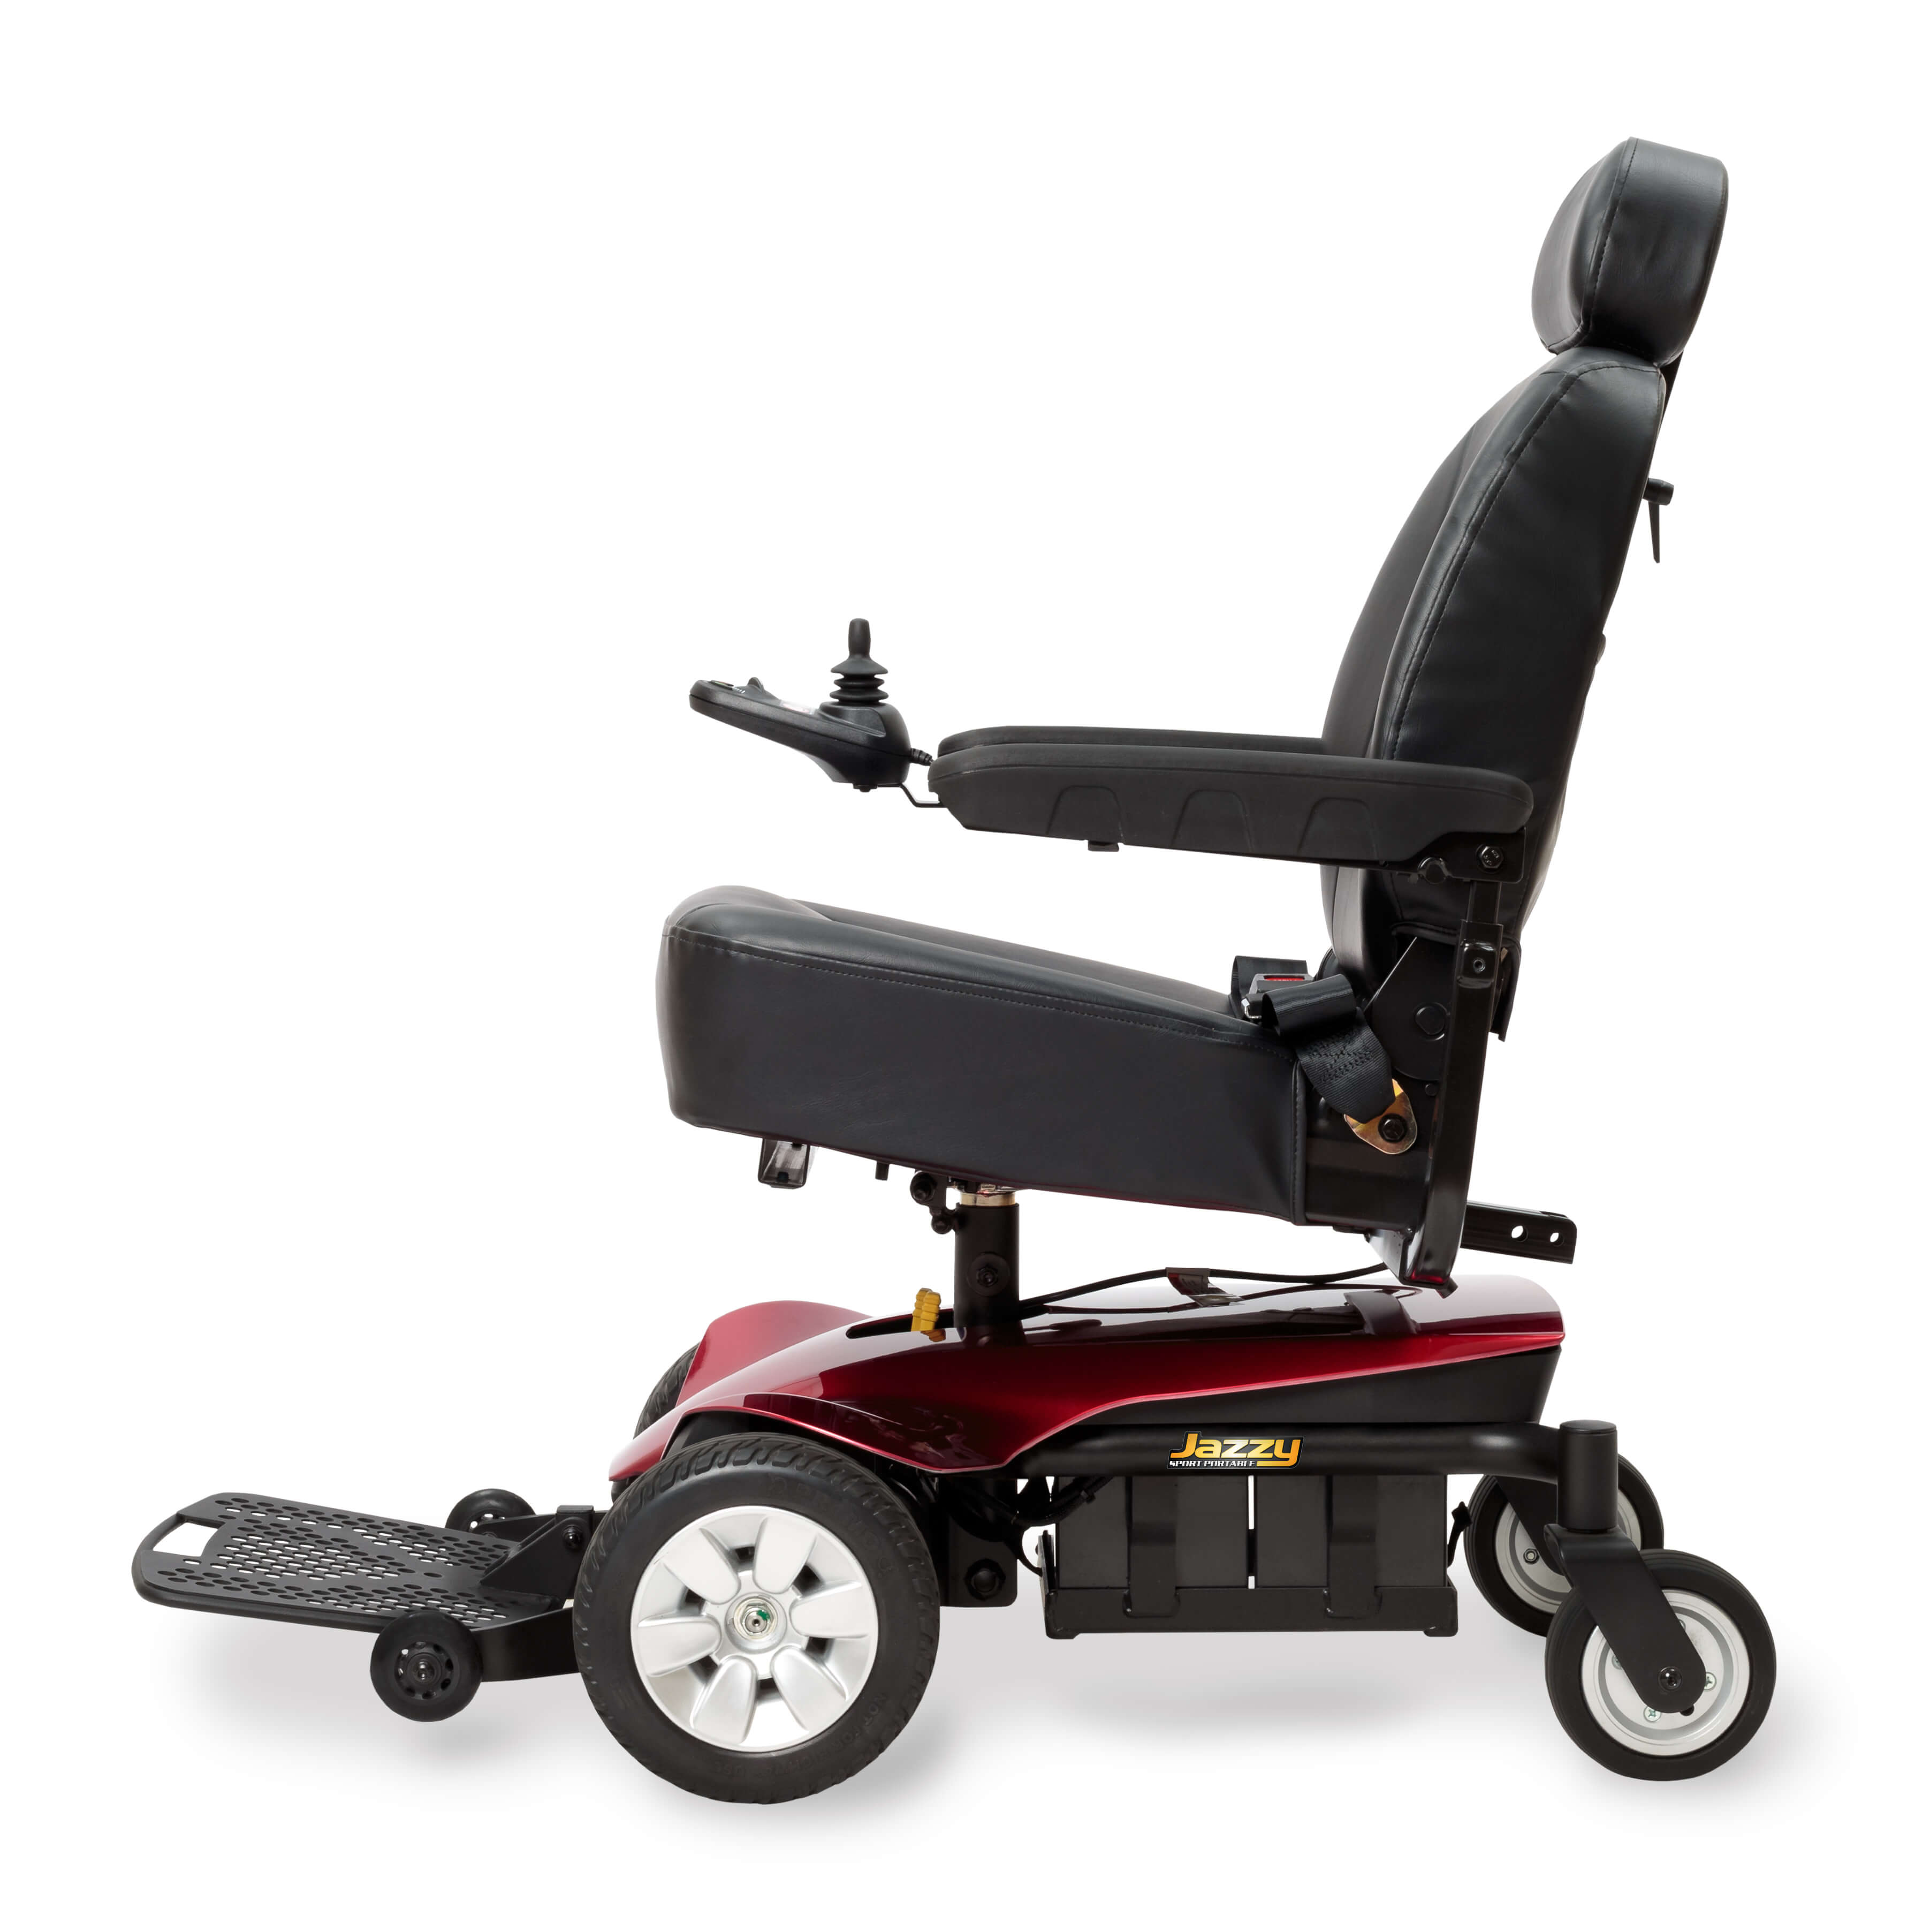 Power Chairs And Scooters Pride Jazzy Sport Portable Full Size Power Wheelchair